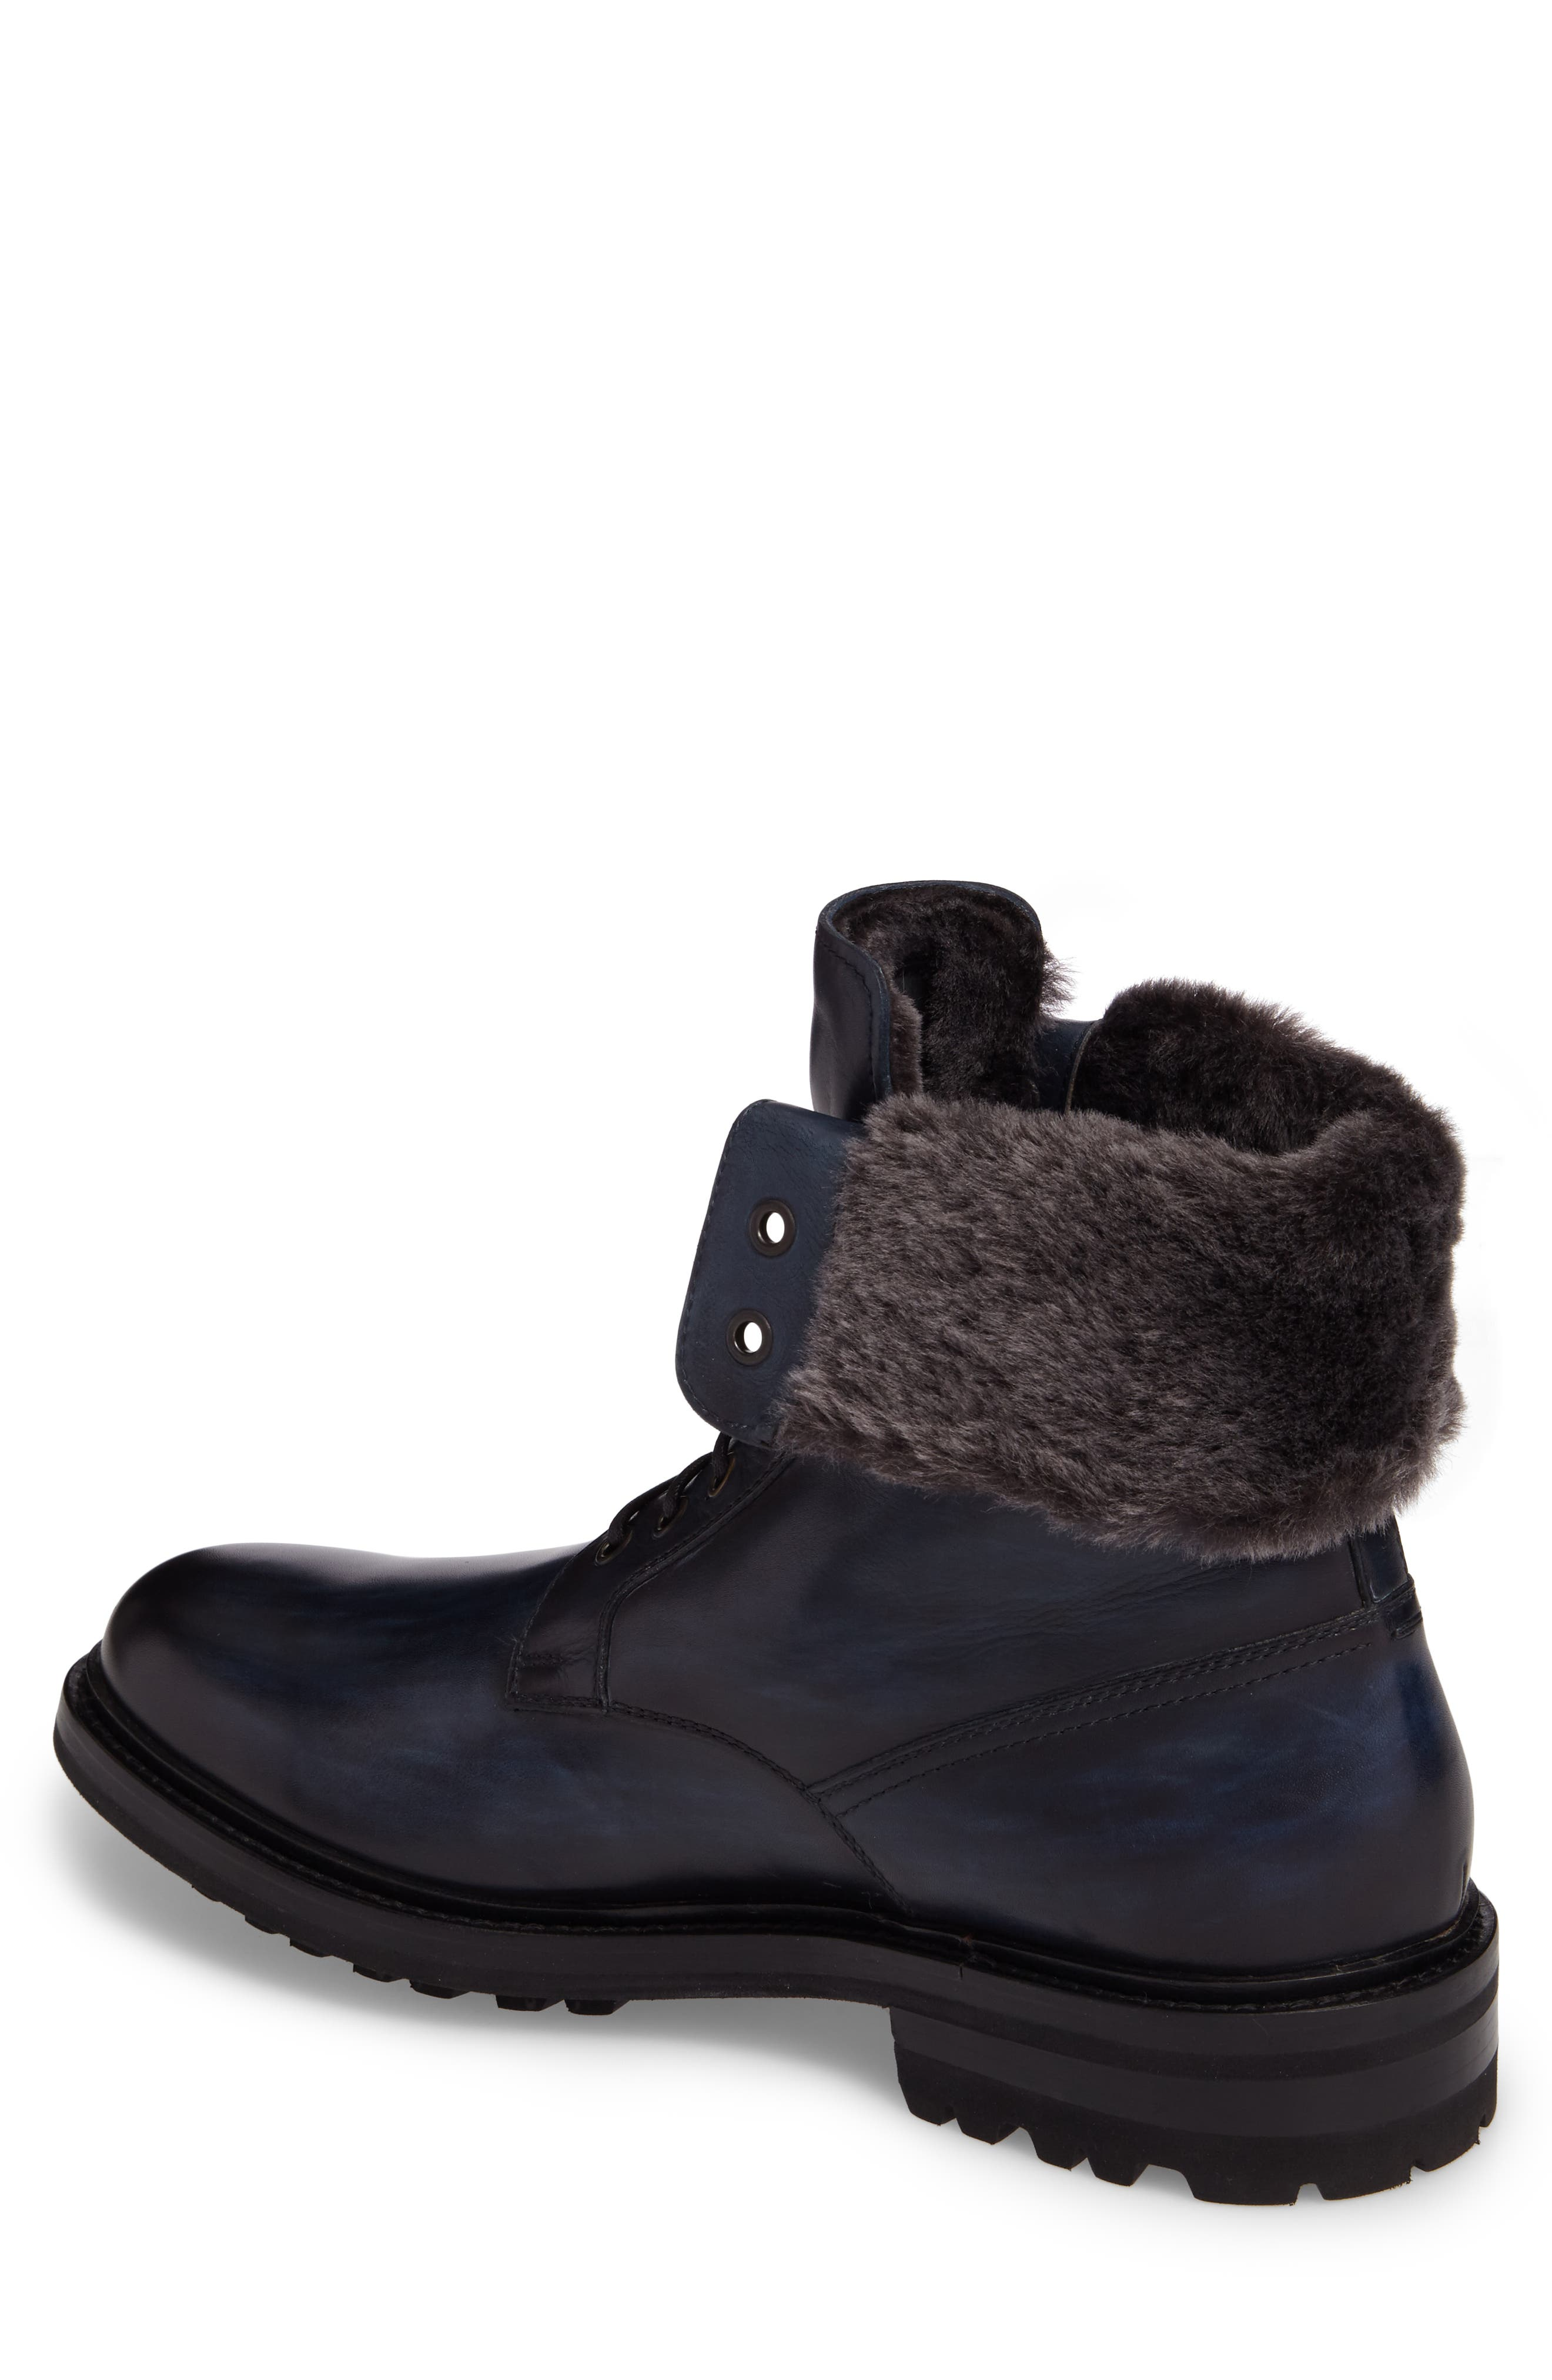 Paxton Plain Toe Boot with Genuine Rabbit Fur Cuff,                             Alternate thumbnail 2, color,                             Navy Leather